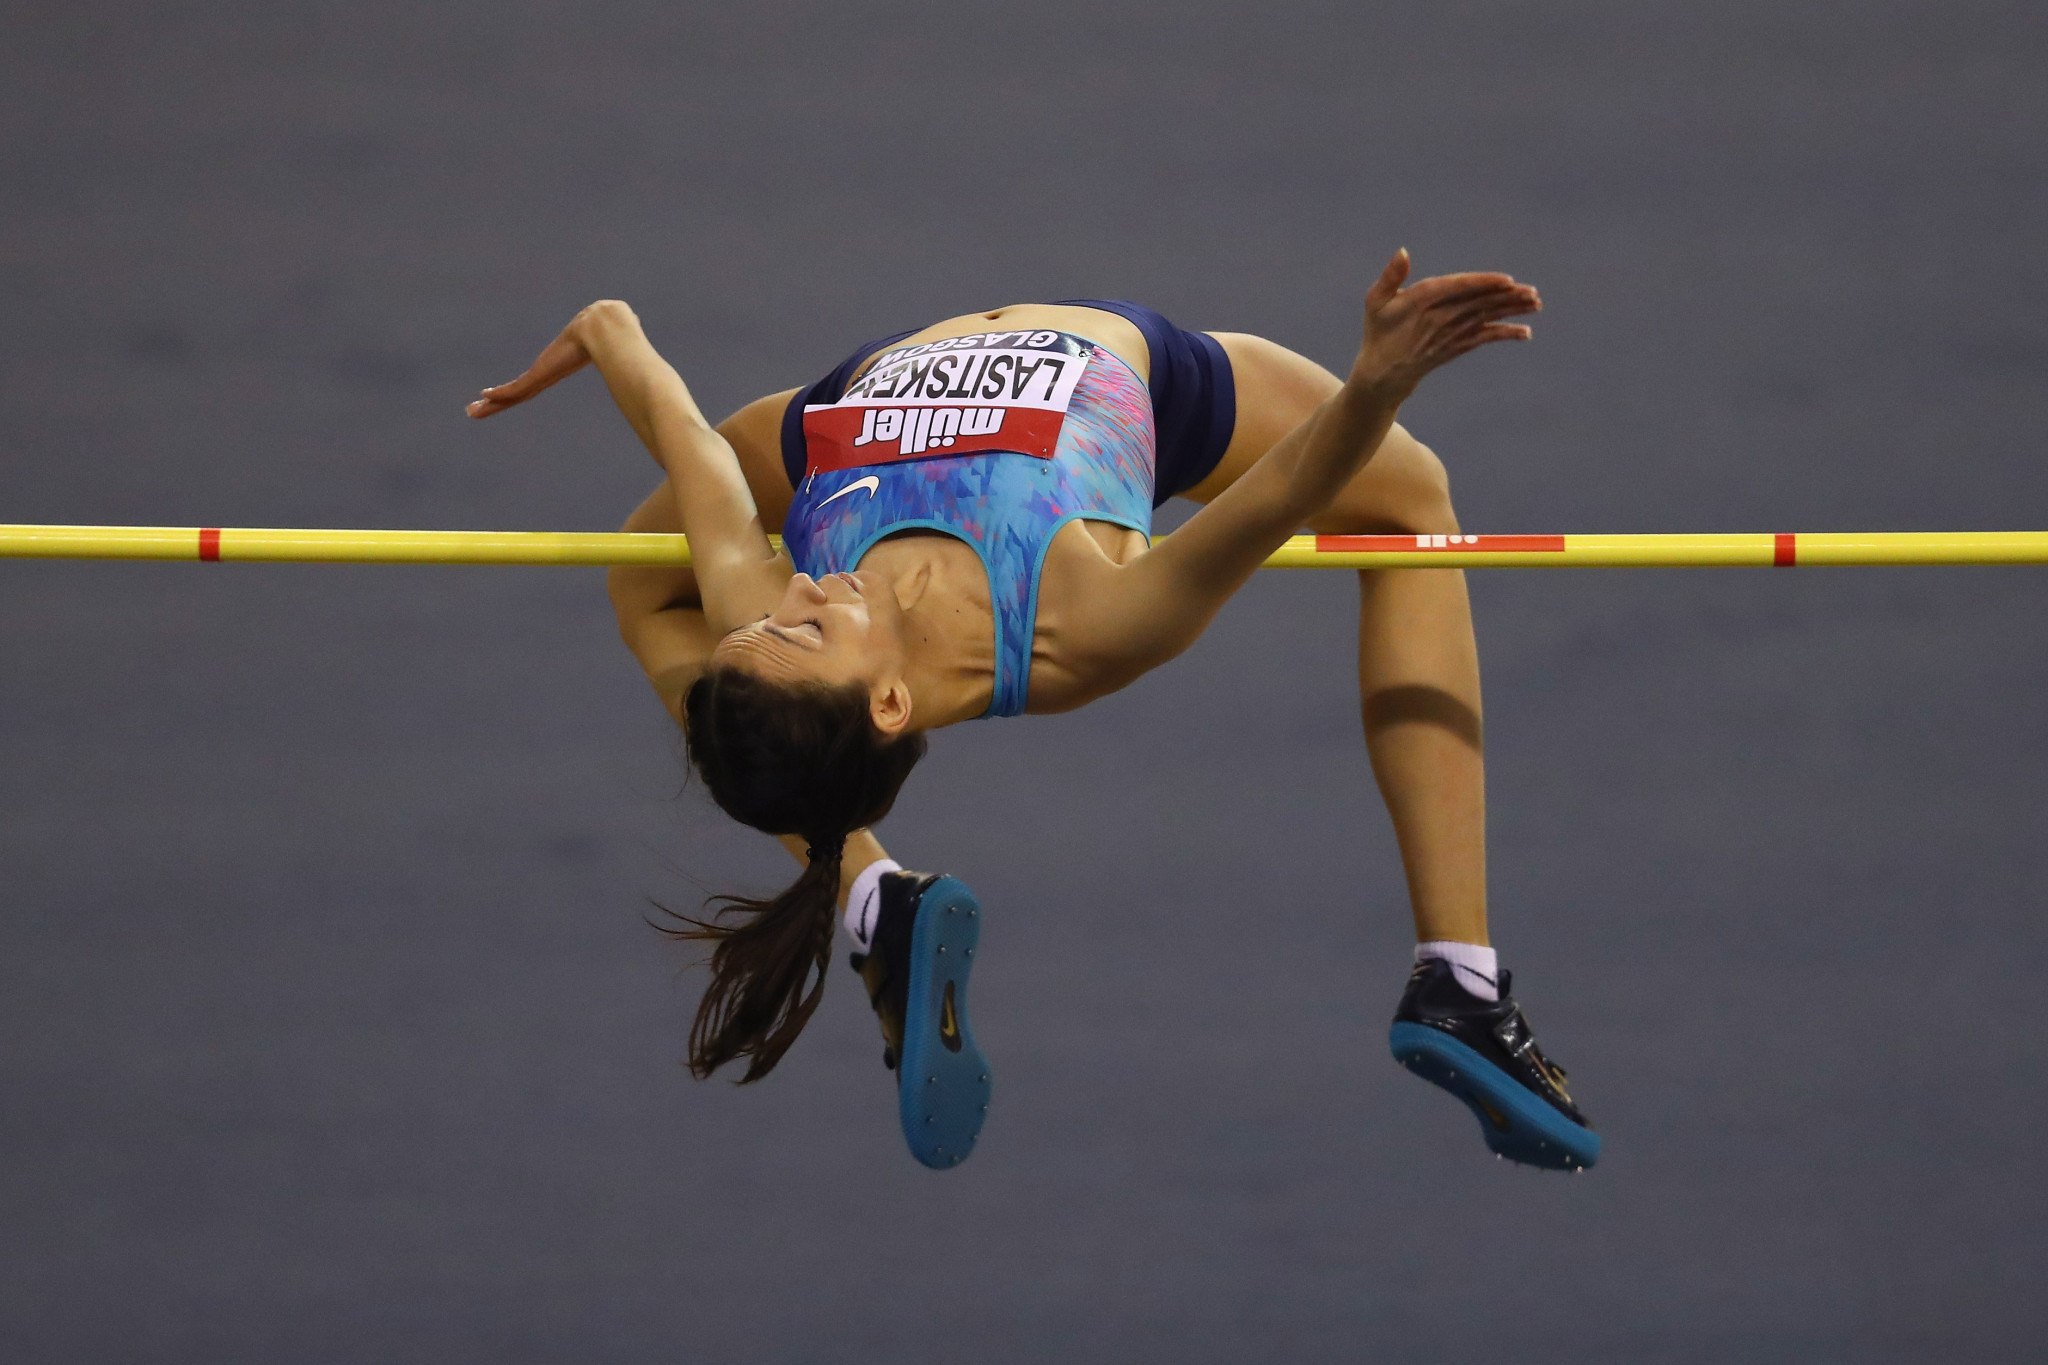 Russia's Mariya Lasitskene, competing as an Authorised Neutral Athlete, won the high jump at the IAAF World Indoor Tour event in Glasgow to continue her recent excellent form ©Getty Images